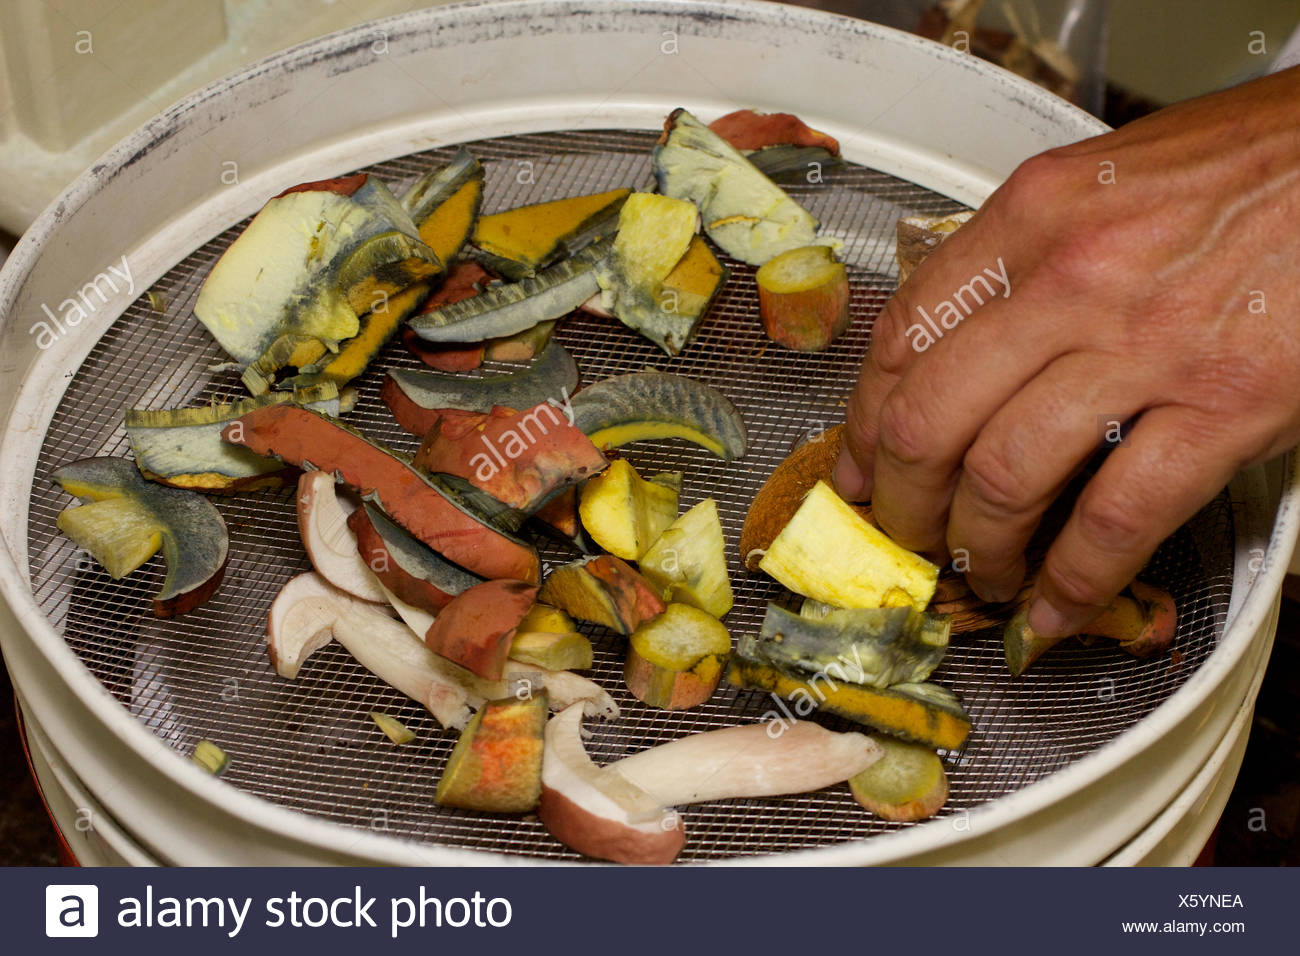 Various cut Bolete mushrooms in a dehydrating set-up for preservation for eating. - Stock Image